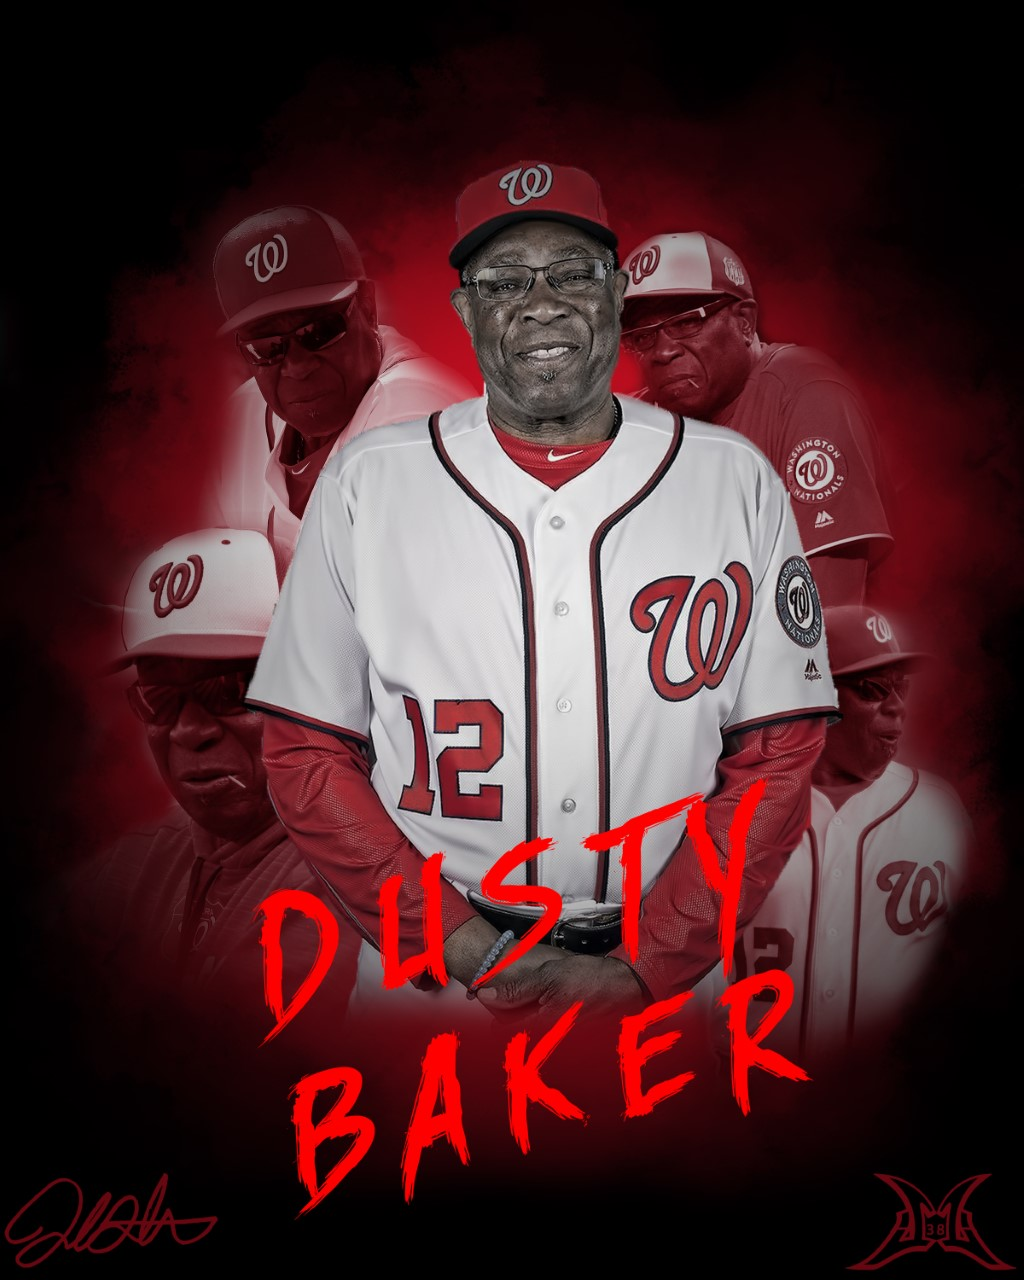 Dusty-baker-jjgraphics